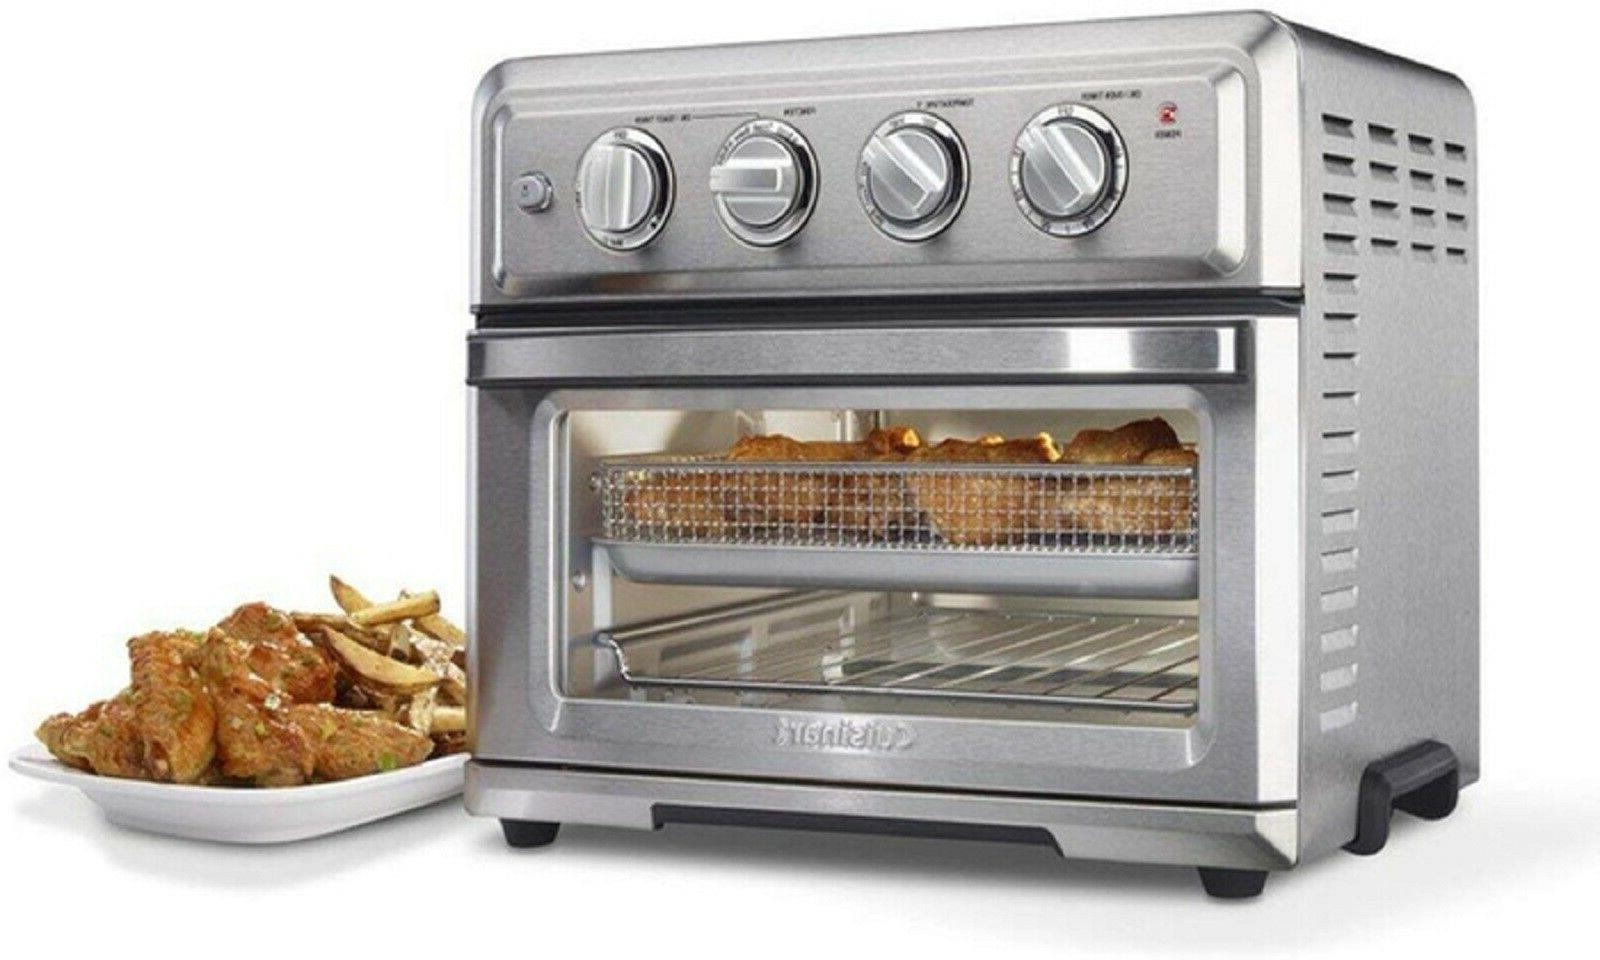 New! TOA-60 Stainless Steel Fryer Toaster - BOX!